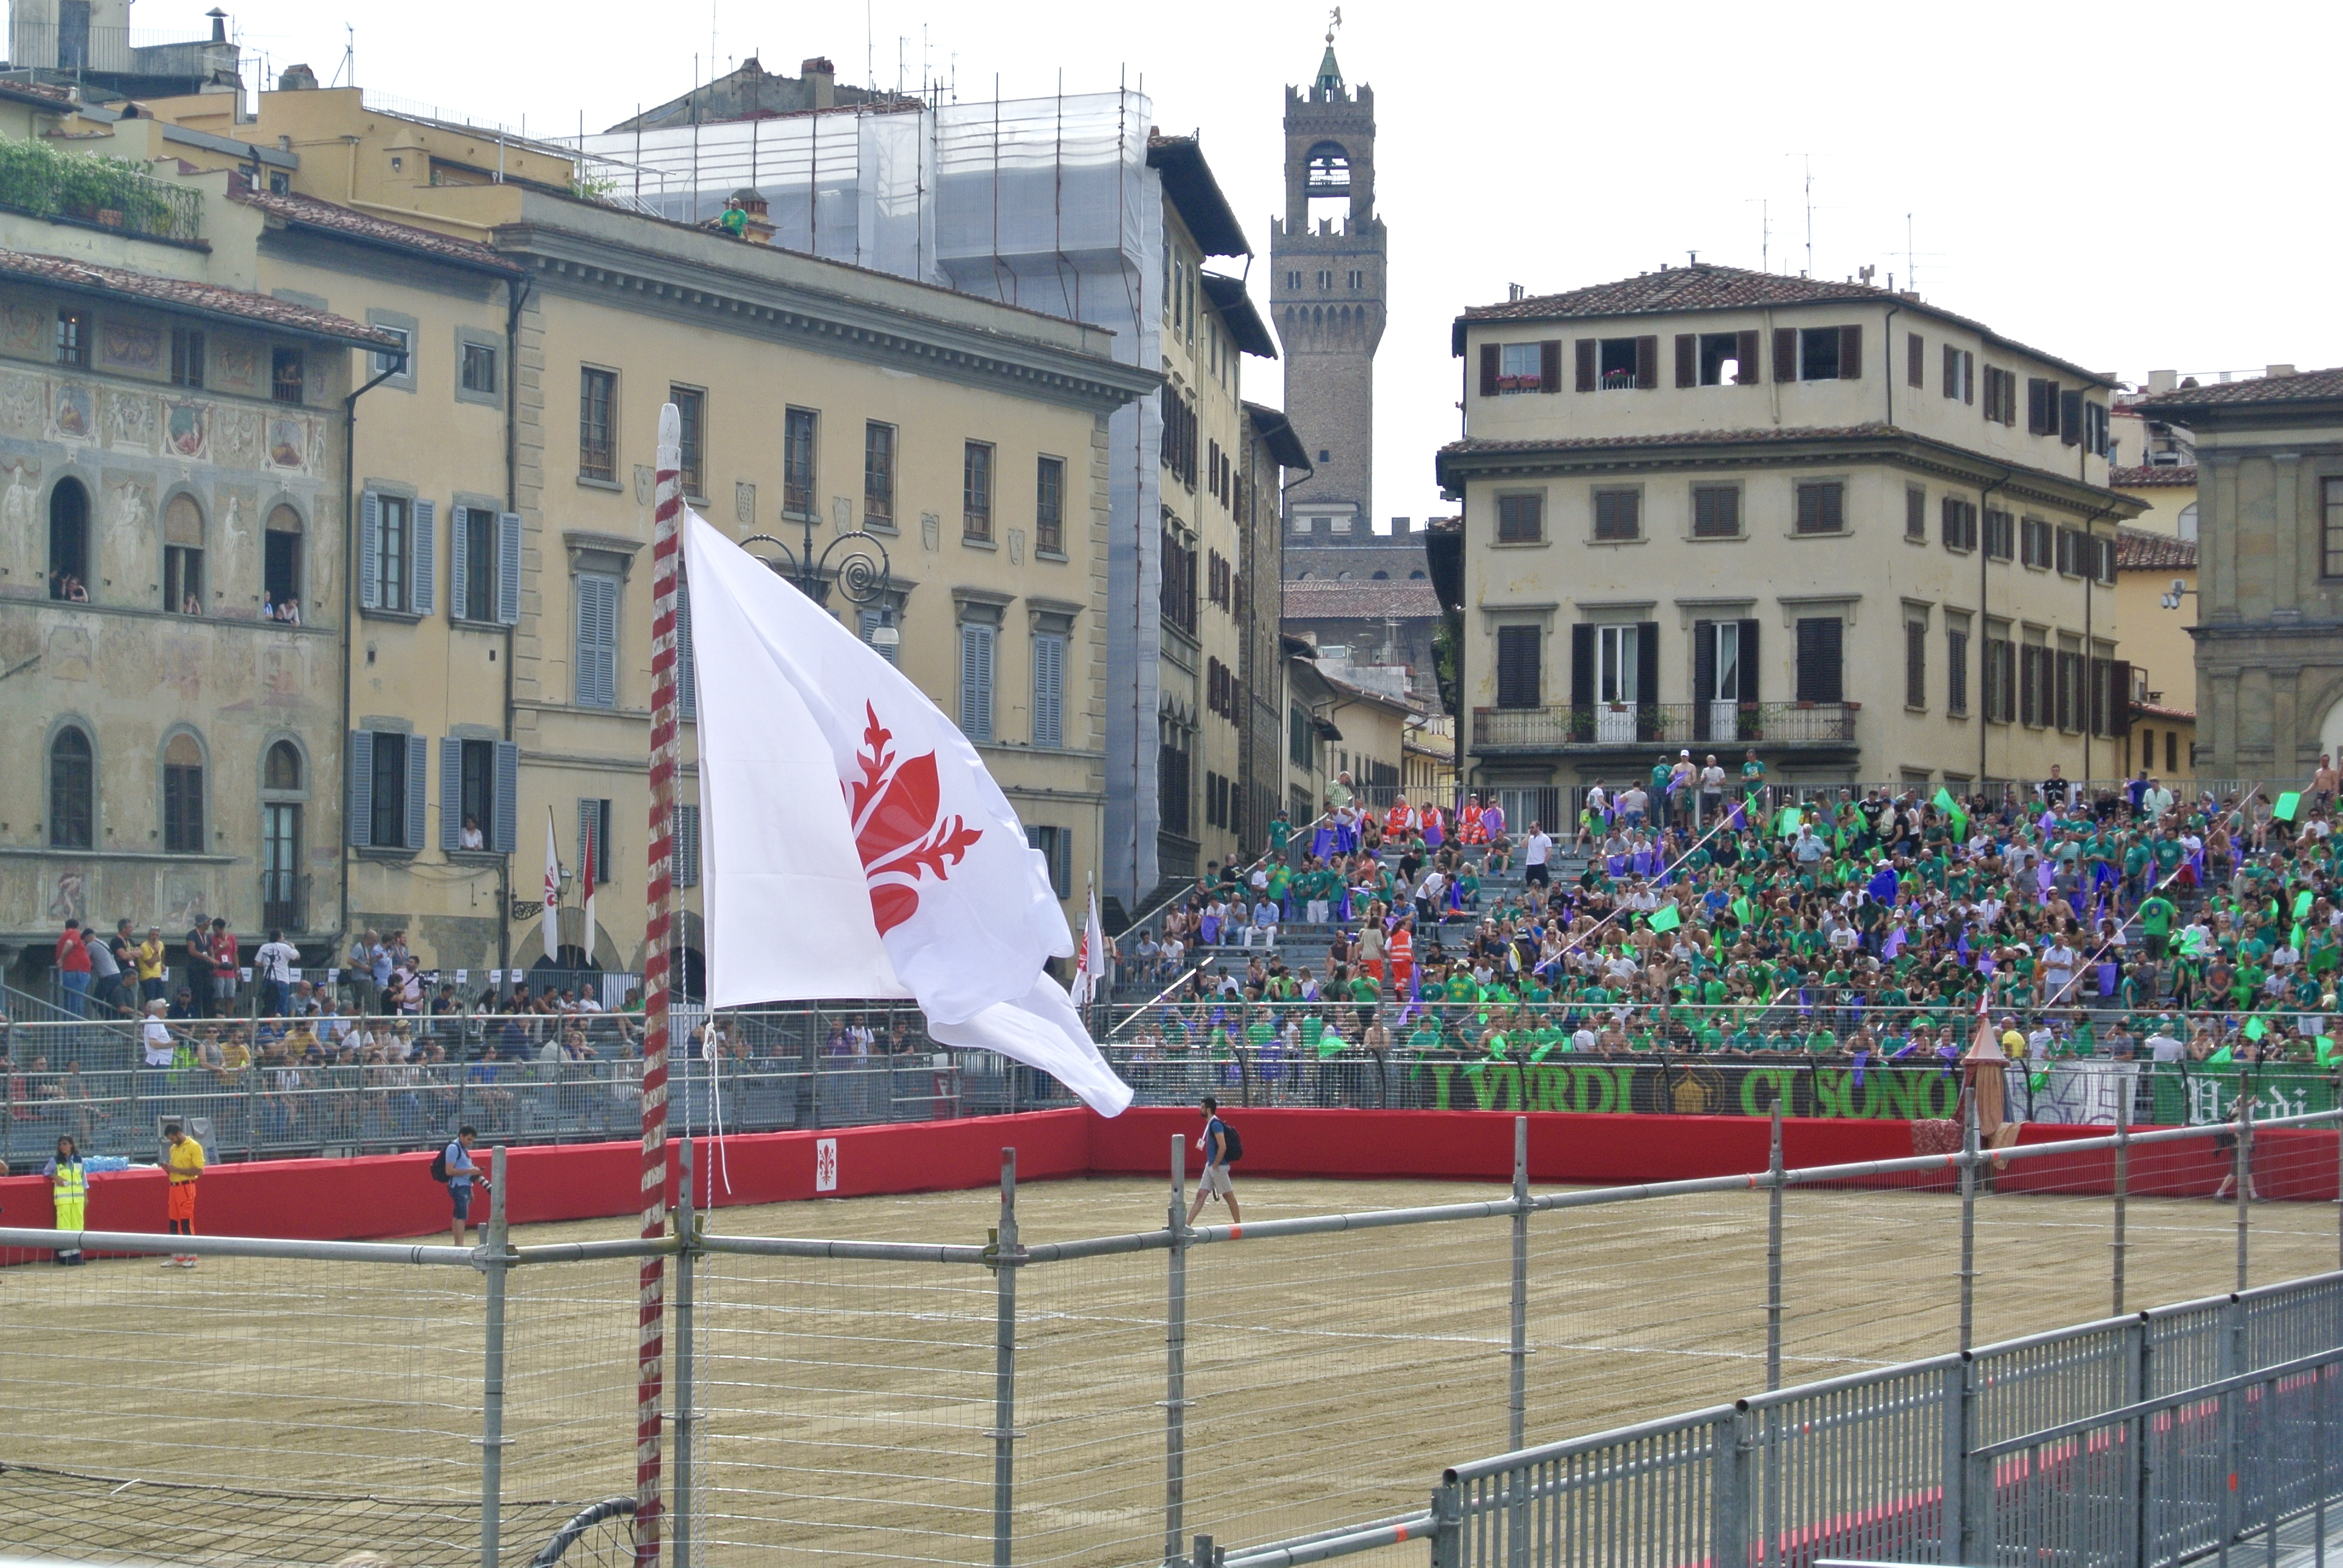 Image from Calcio Storico sporting event in Florence, Italy